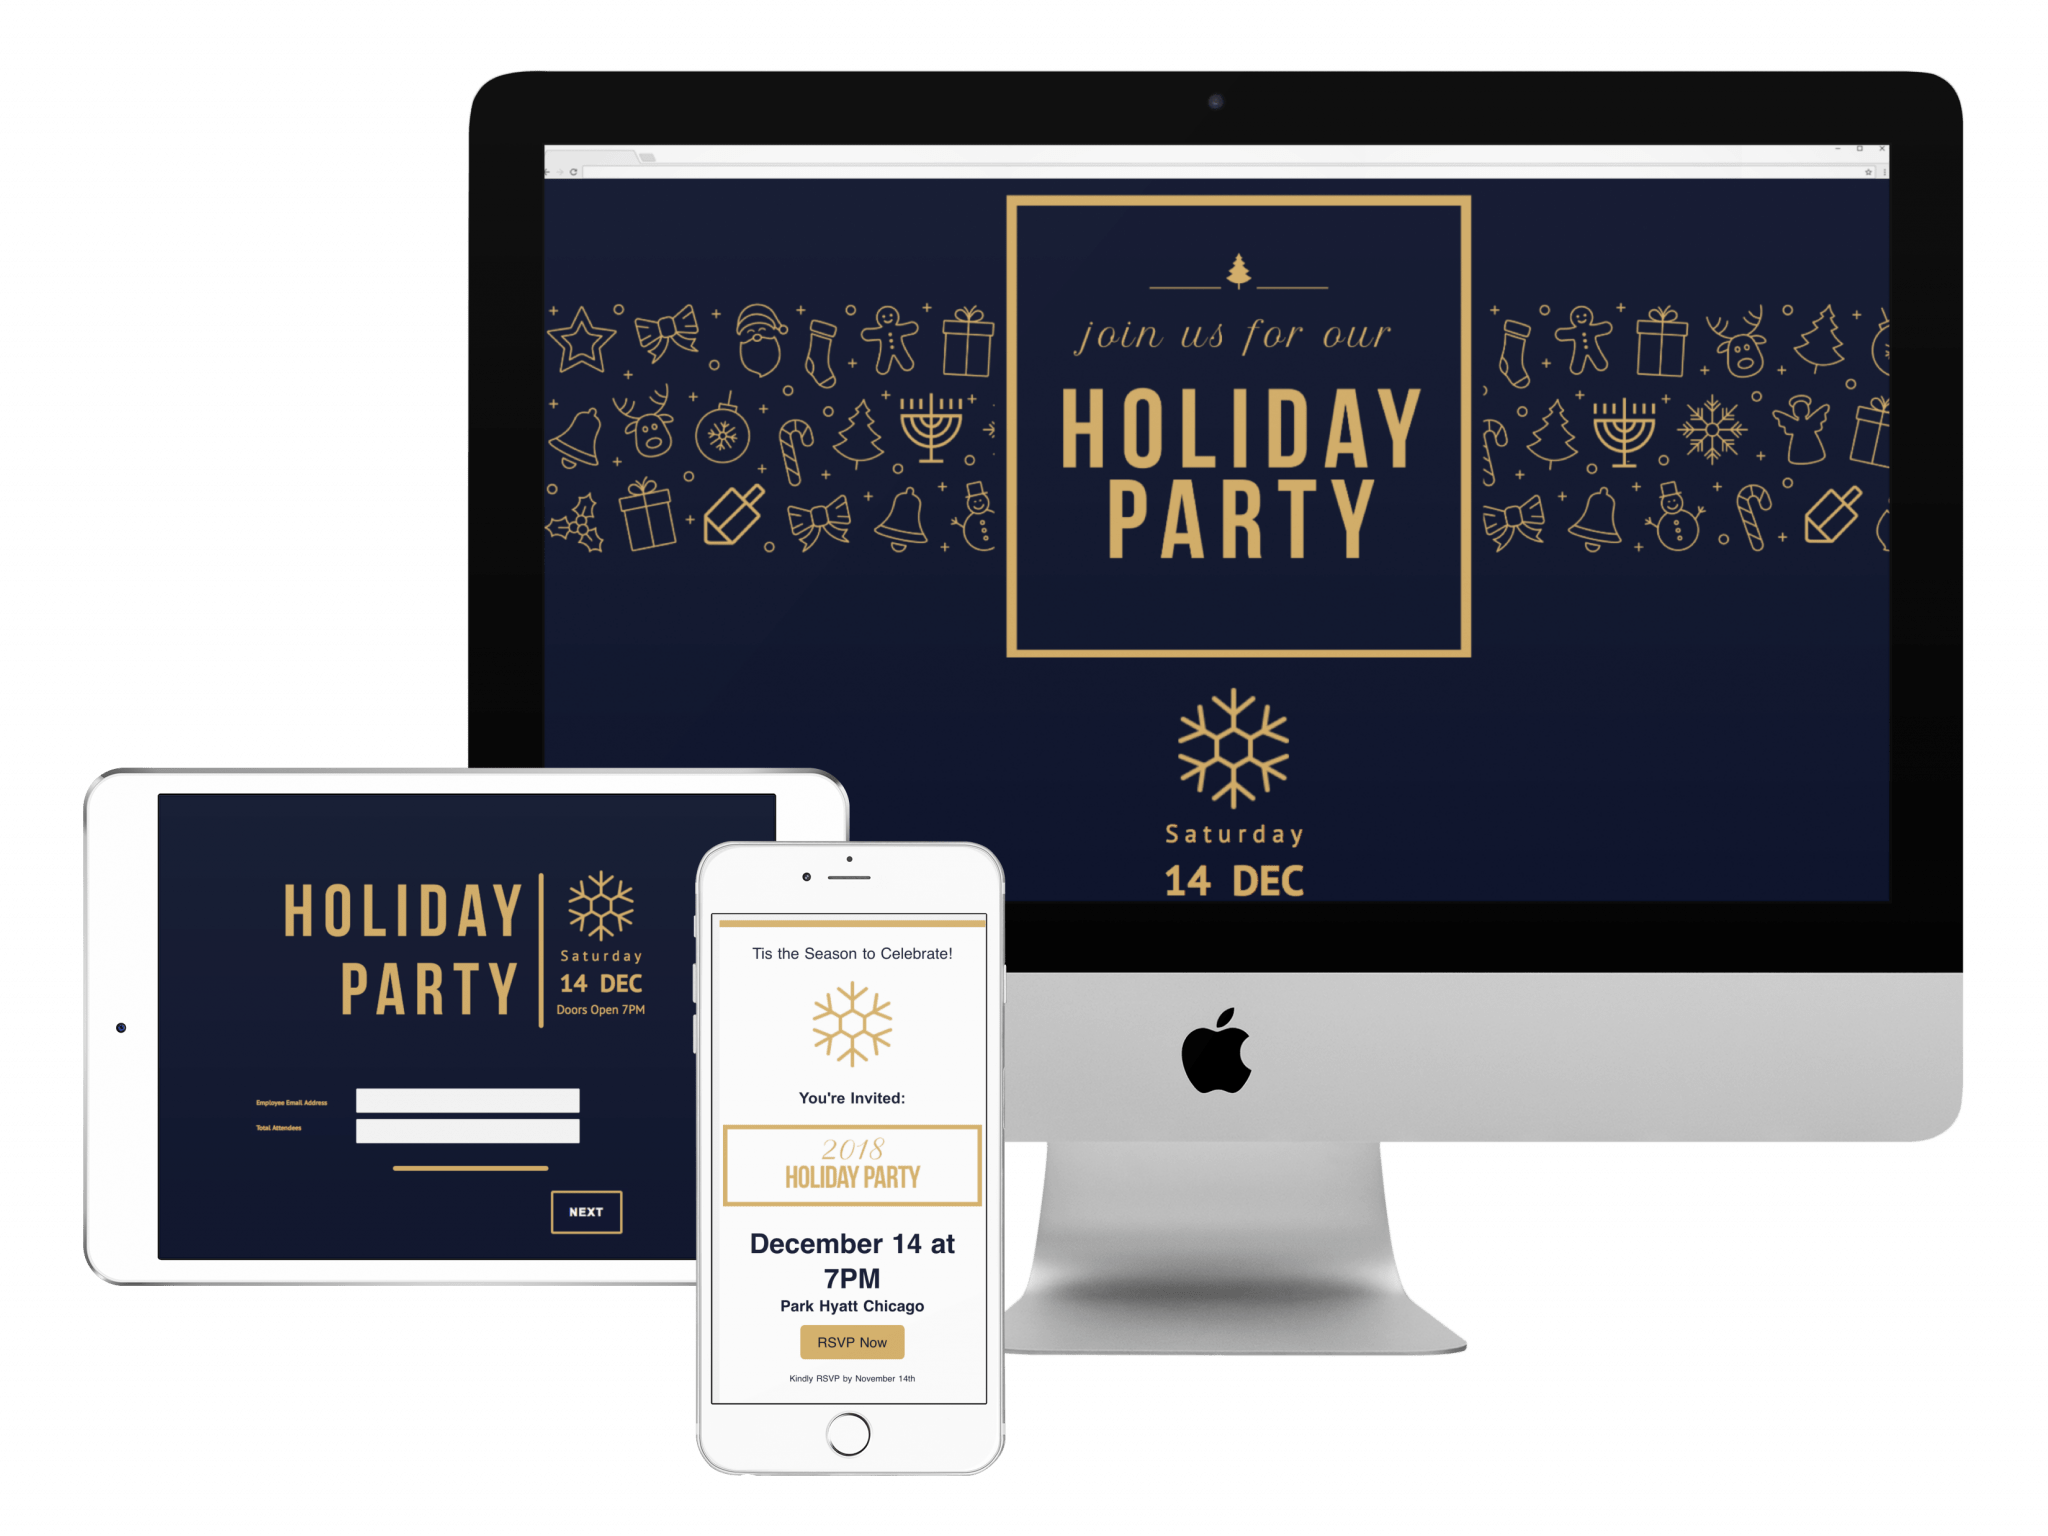 Event guest check-in system. Check guests in at your event with a QR code, name or confirmation number with RSVPify's check in software.